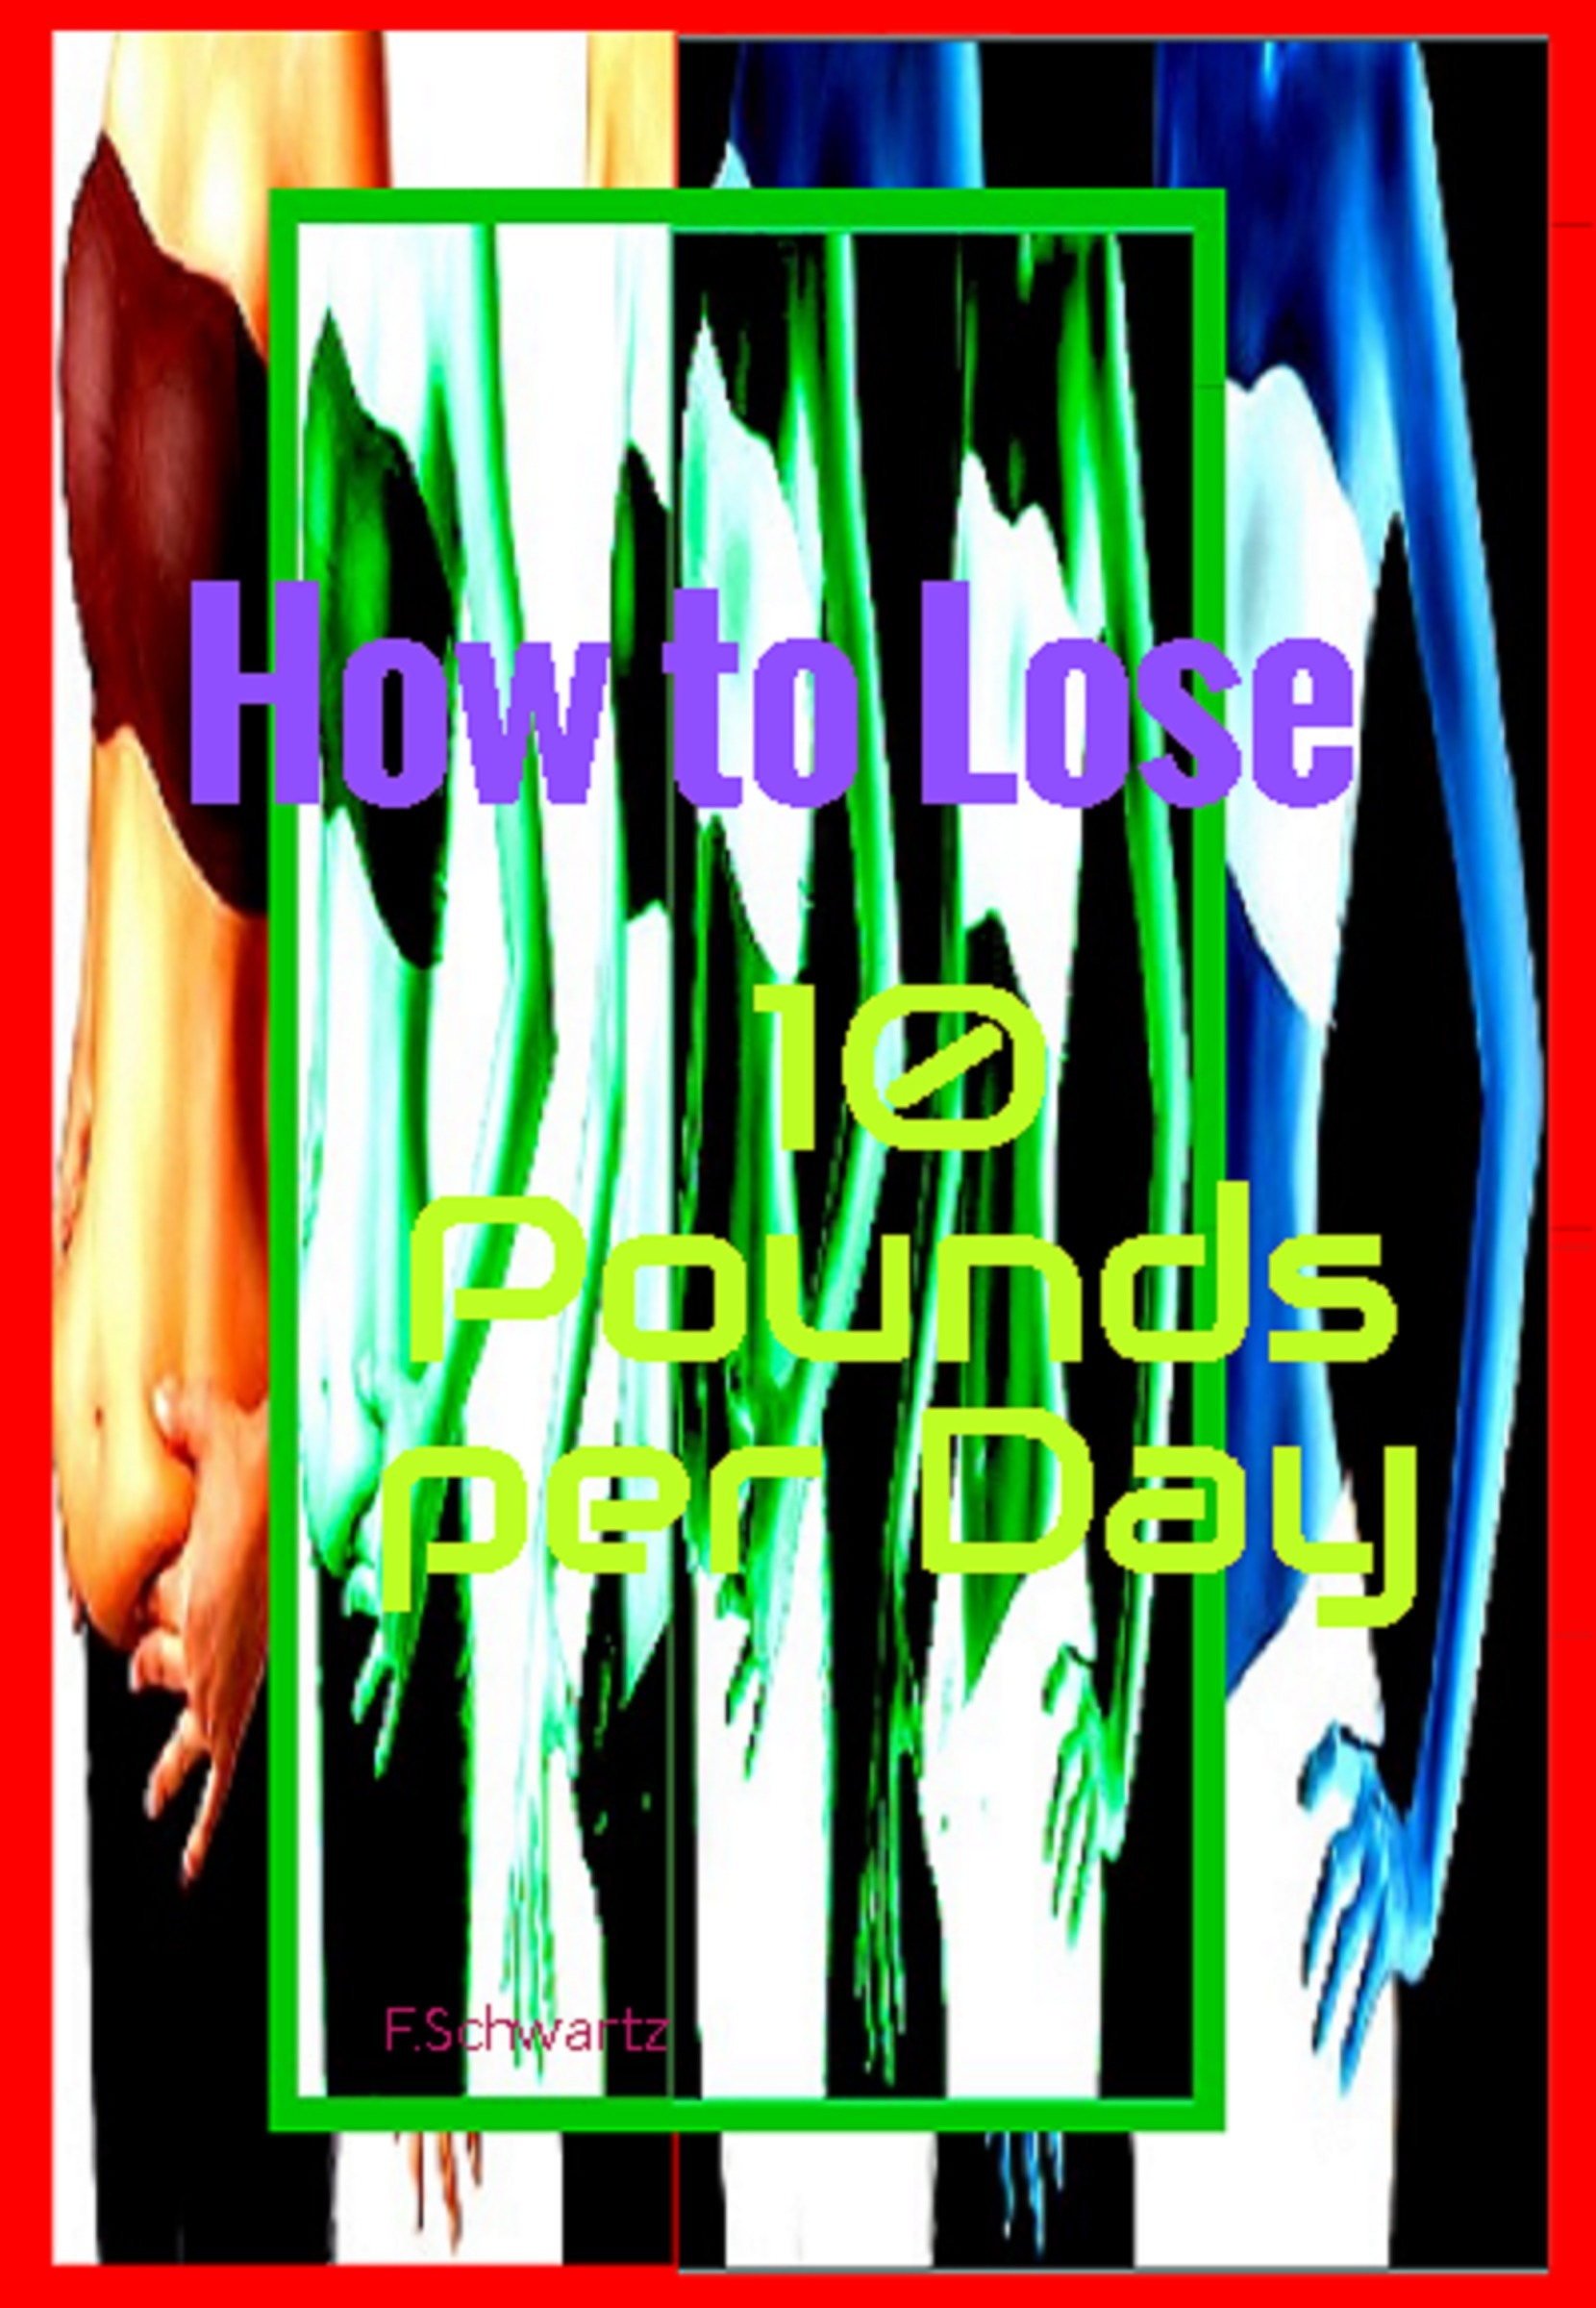 How to Lose 10 Pounds per Day